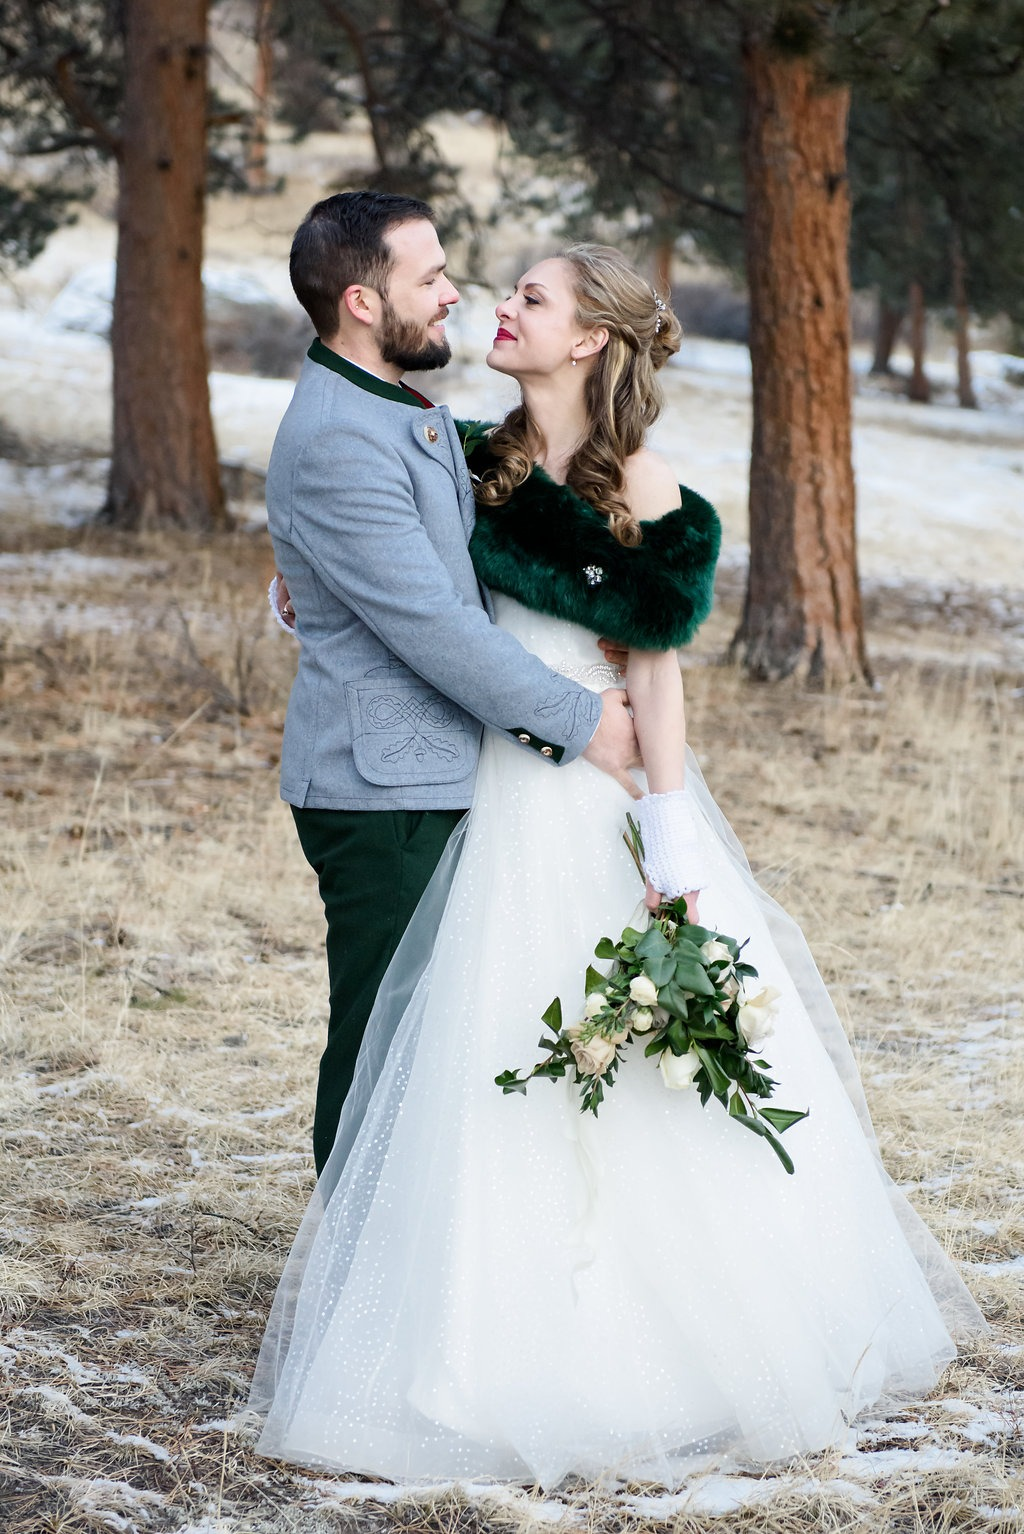 Real Lea-Ann Belter Brides | Kristina + Jeff's Evergreen Winter Wonderland Wedding in Colorado | | dress: Astrid + Mercedes Minuit